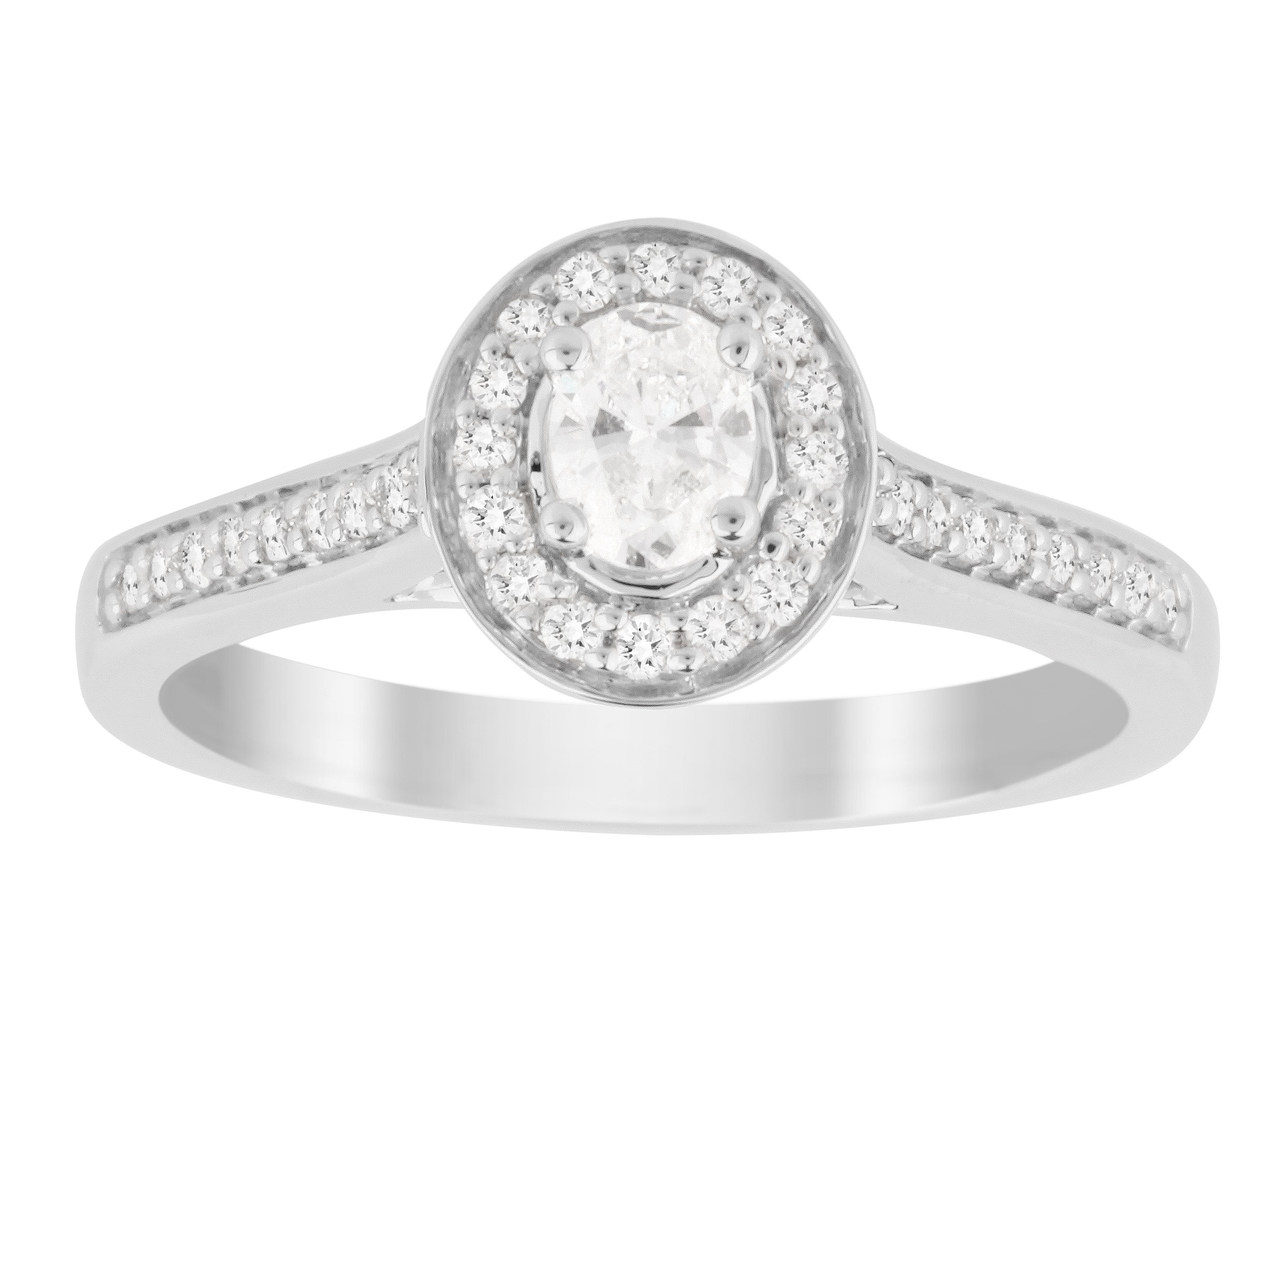 Jenny Packham Oval Cut 0.35 Carat Total Weight Halo Diamond Ring in 18 Carat White Gold